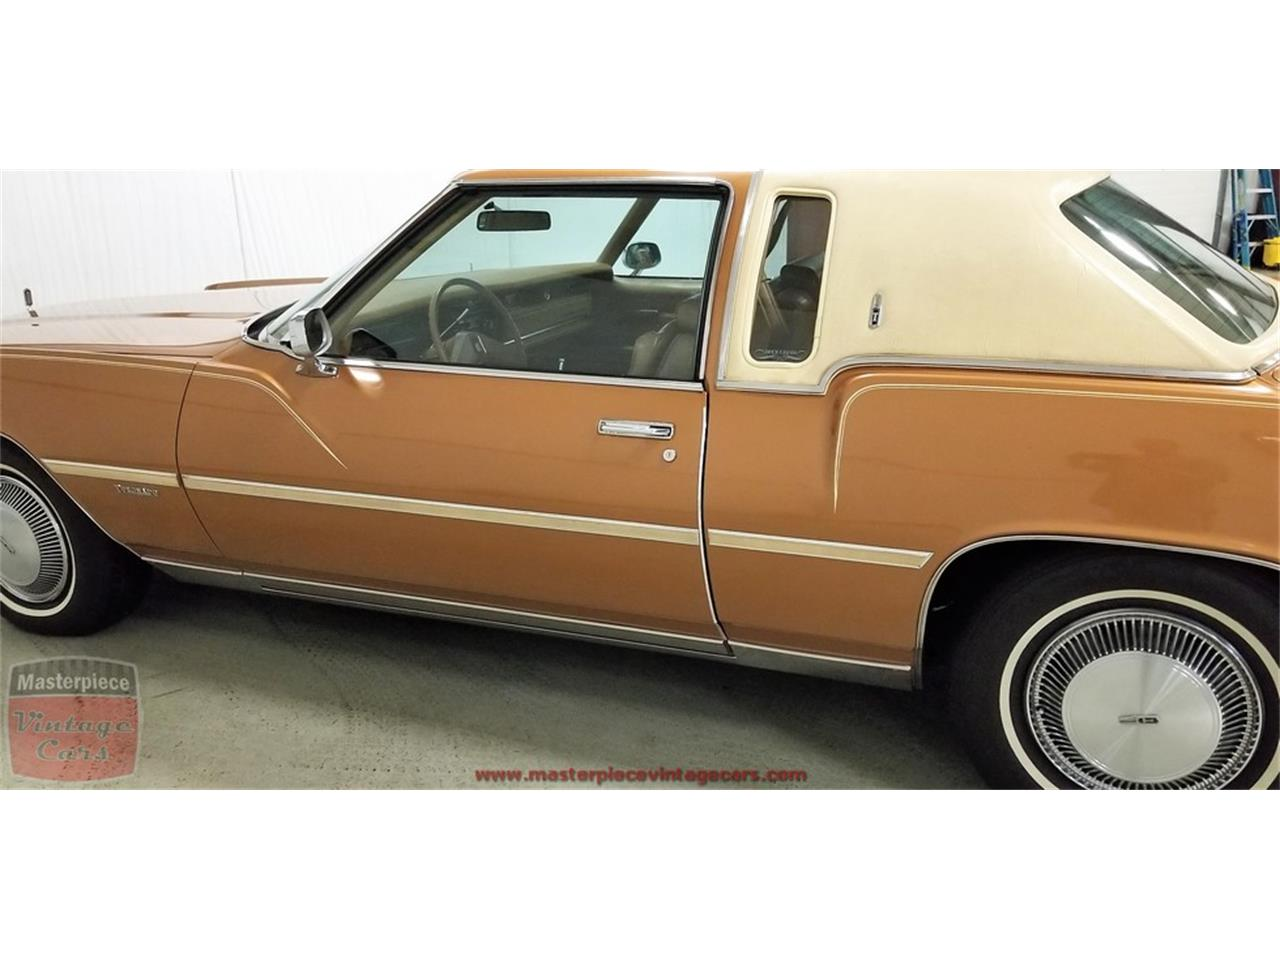 Large Picture of '78 Oldsmobile Toronado located in Indiana Offered by Masterpiece Vintage Cars - QE6N